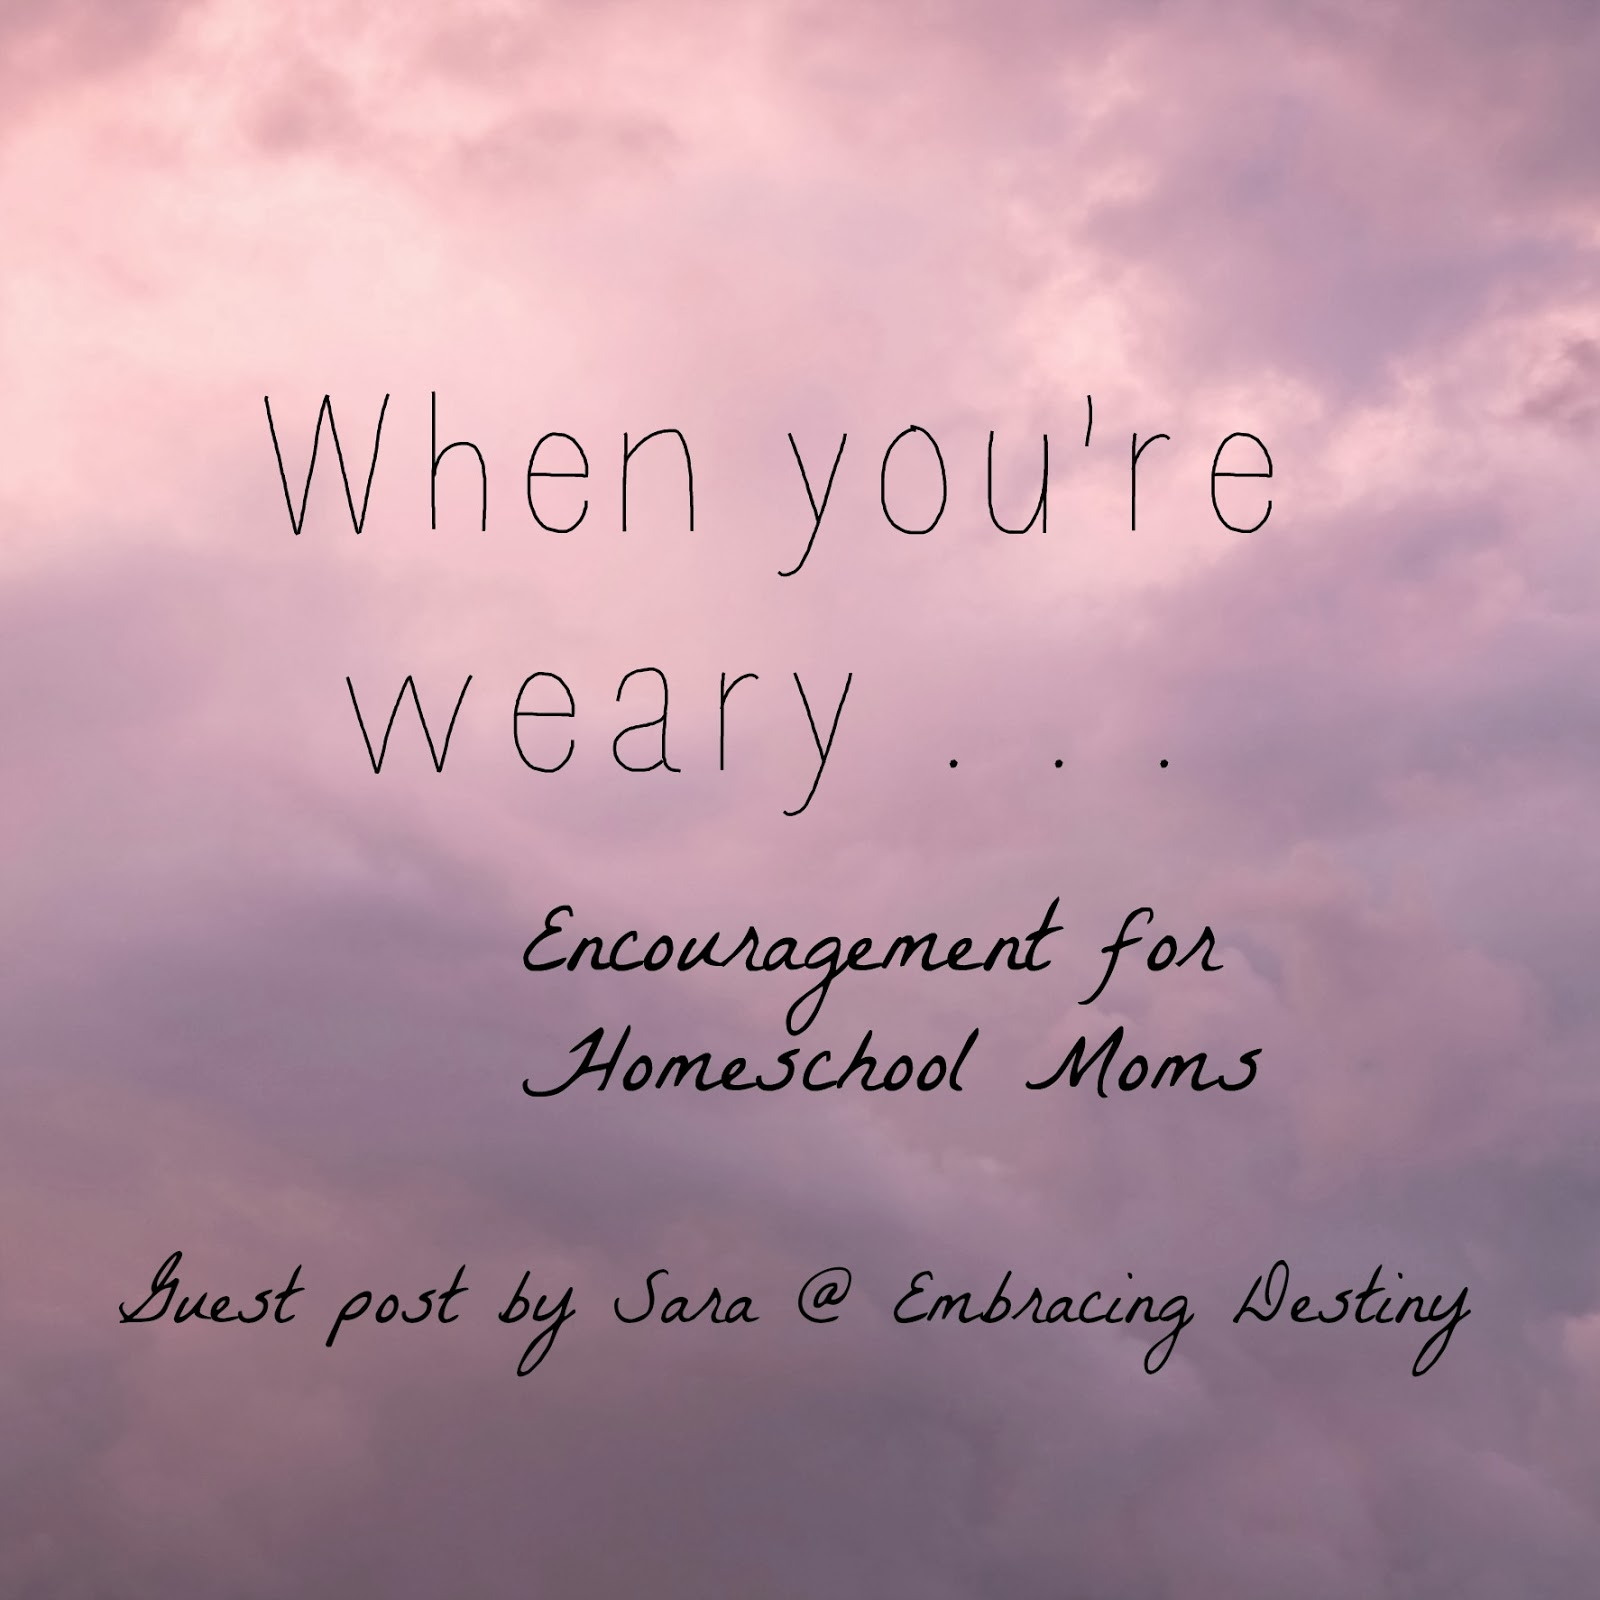 When Youre Weary Mom 2 Mom Mondays Guest Post Sara My Joy